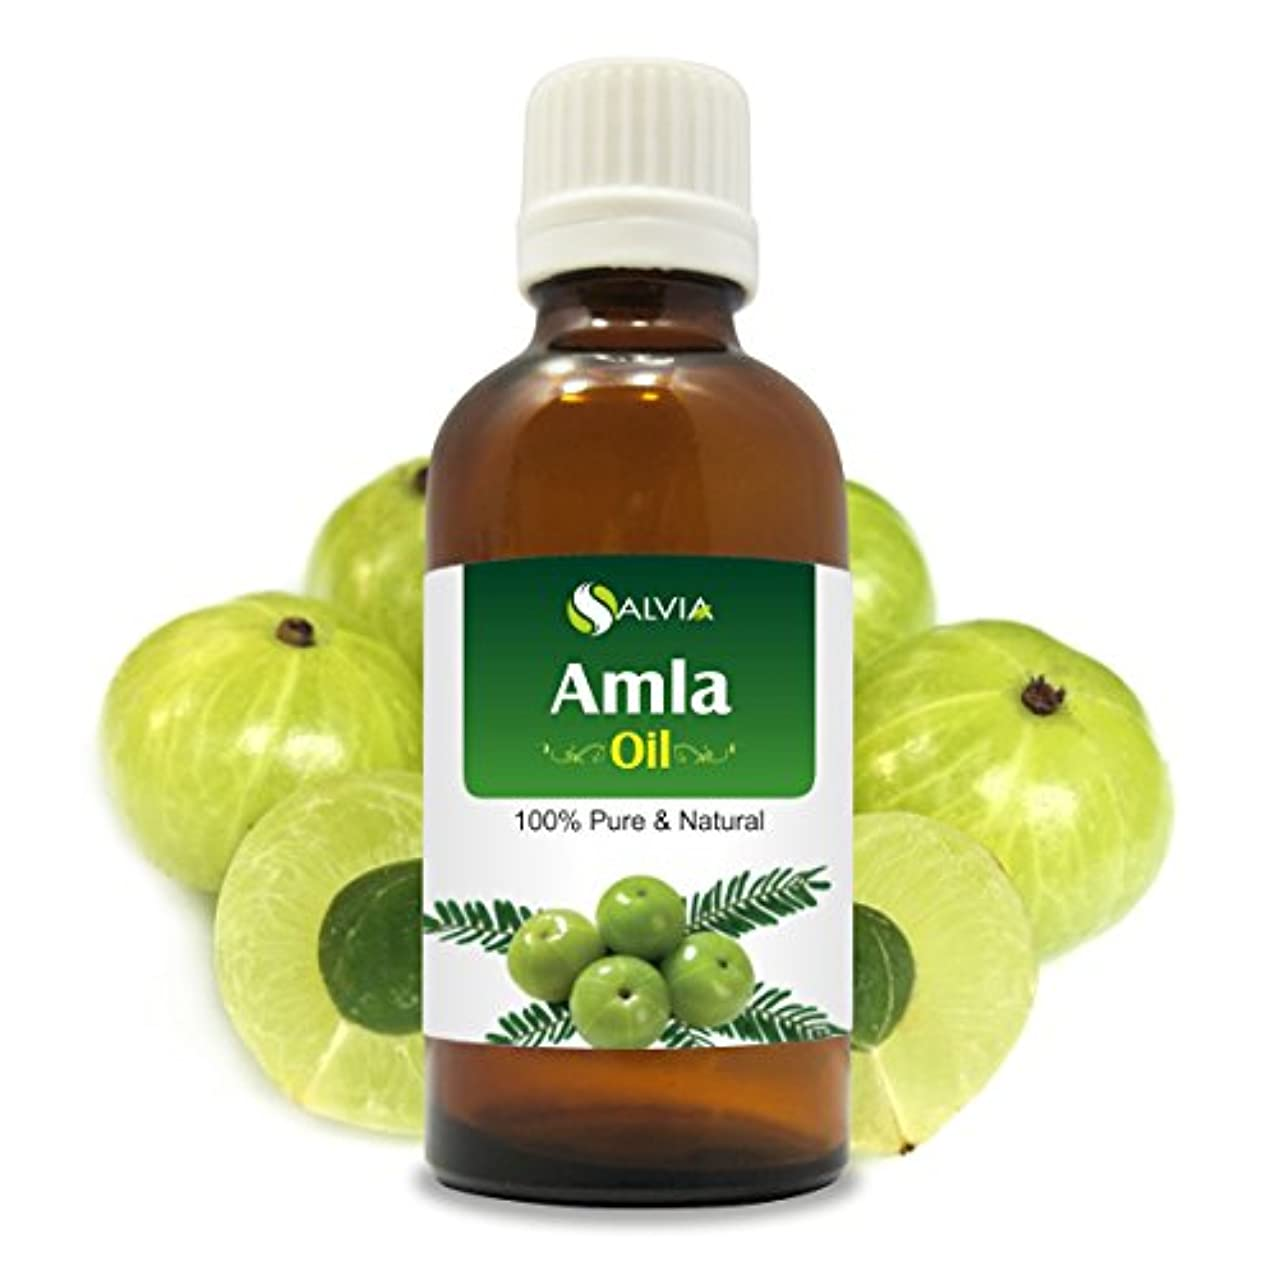 AMLA OIL 100% NATURAL PURE UNDILUTED UNCUT ESSENTIAL OIL 100ML